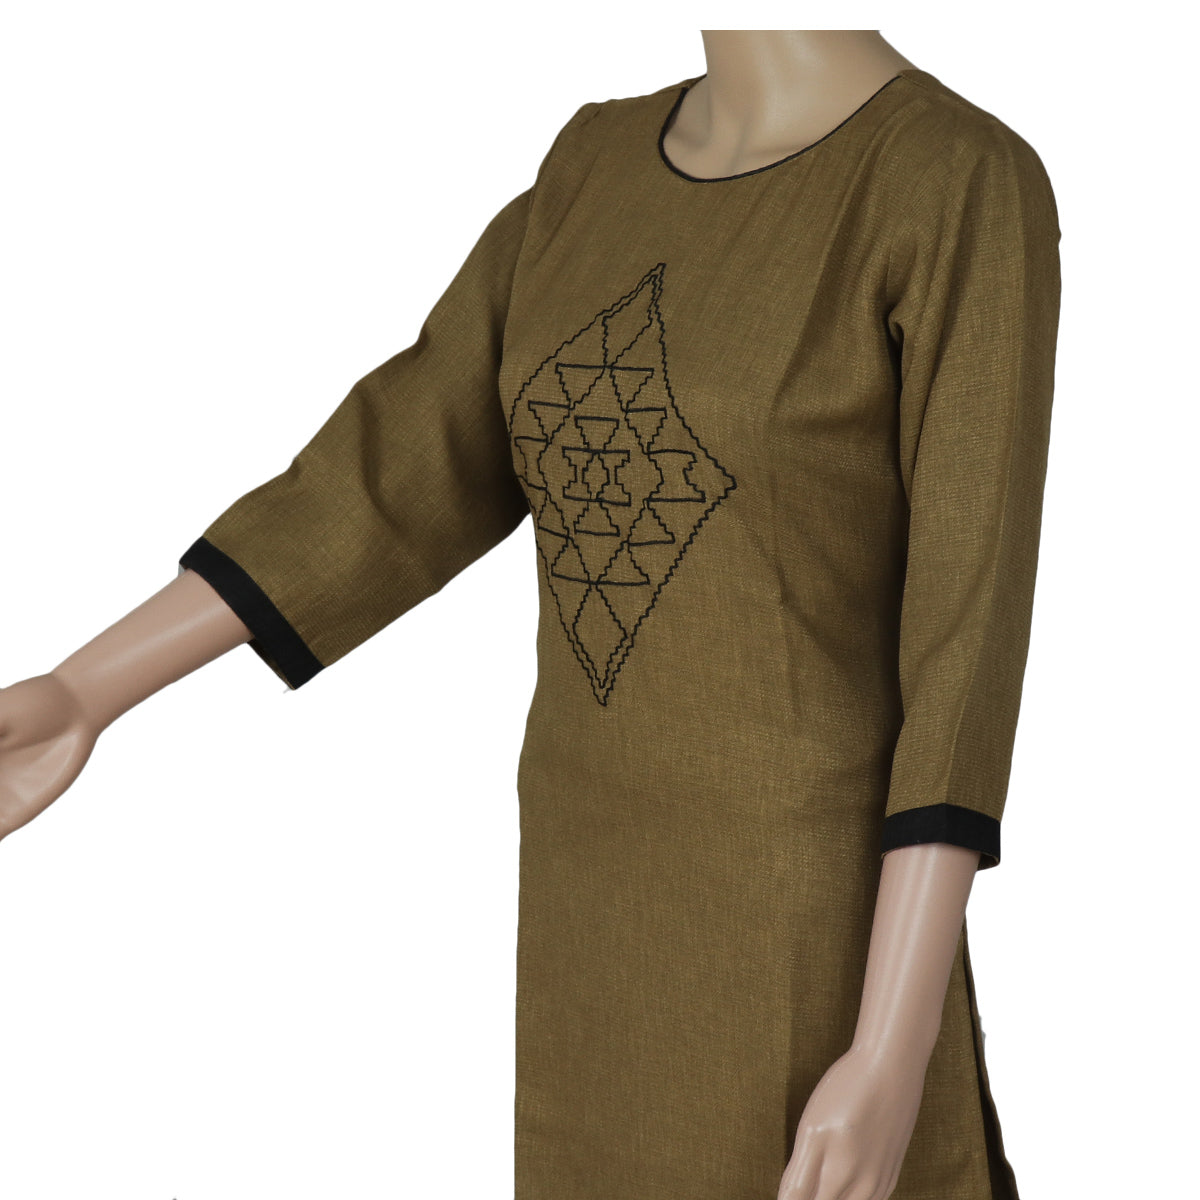 Cotton Kurta Brown and Black with Embroidery Work for Rs.Rs. 1185.00 | Kurta by Prashanti Sarees